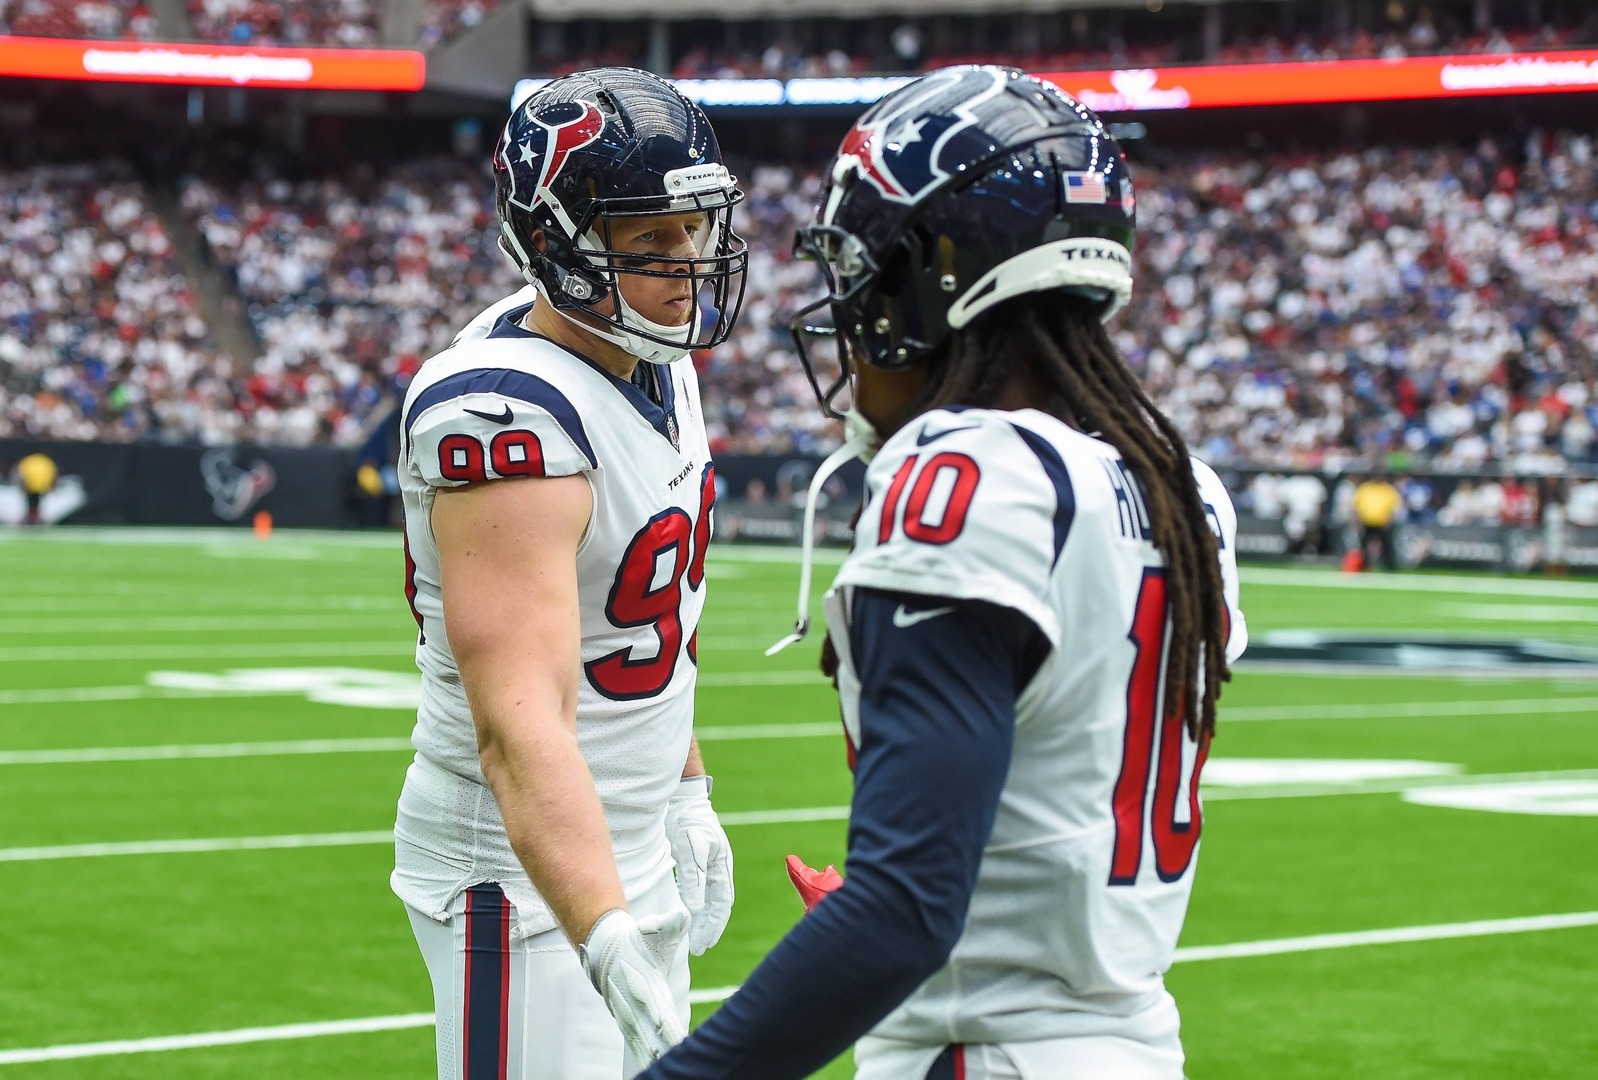 J.J. Watt | DeAndre Hopkins | Houston Texans